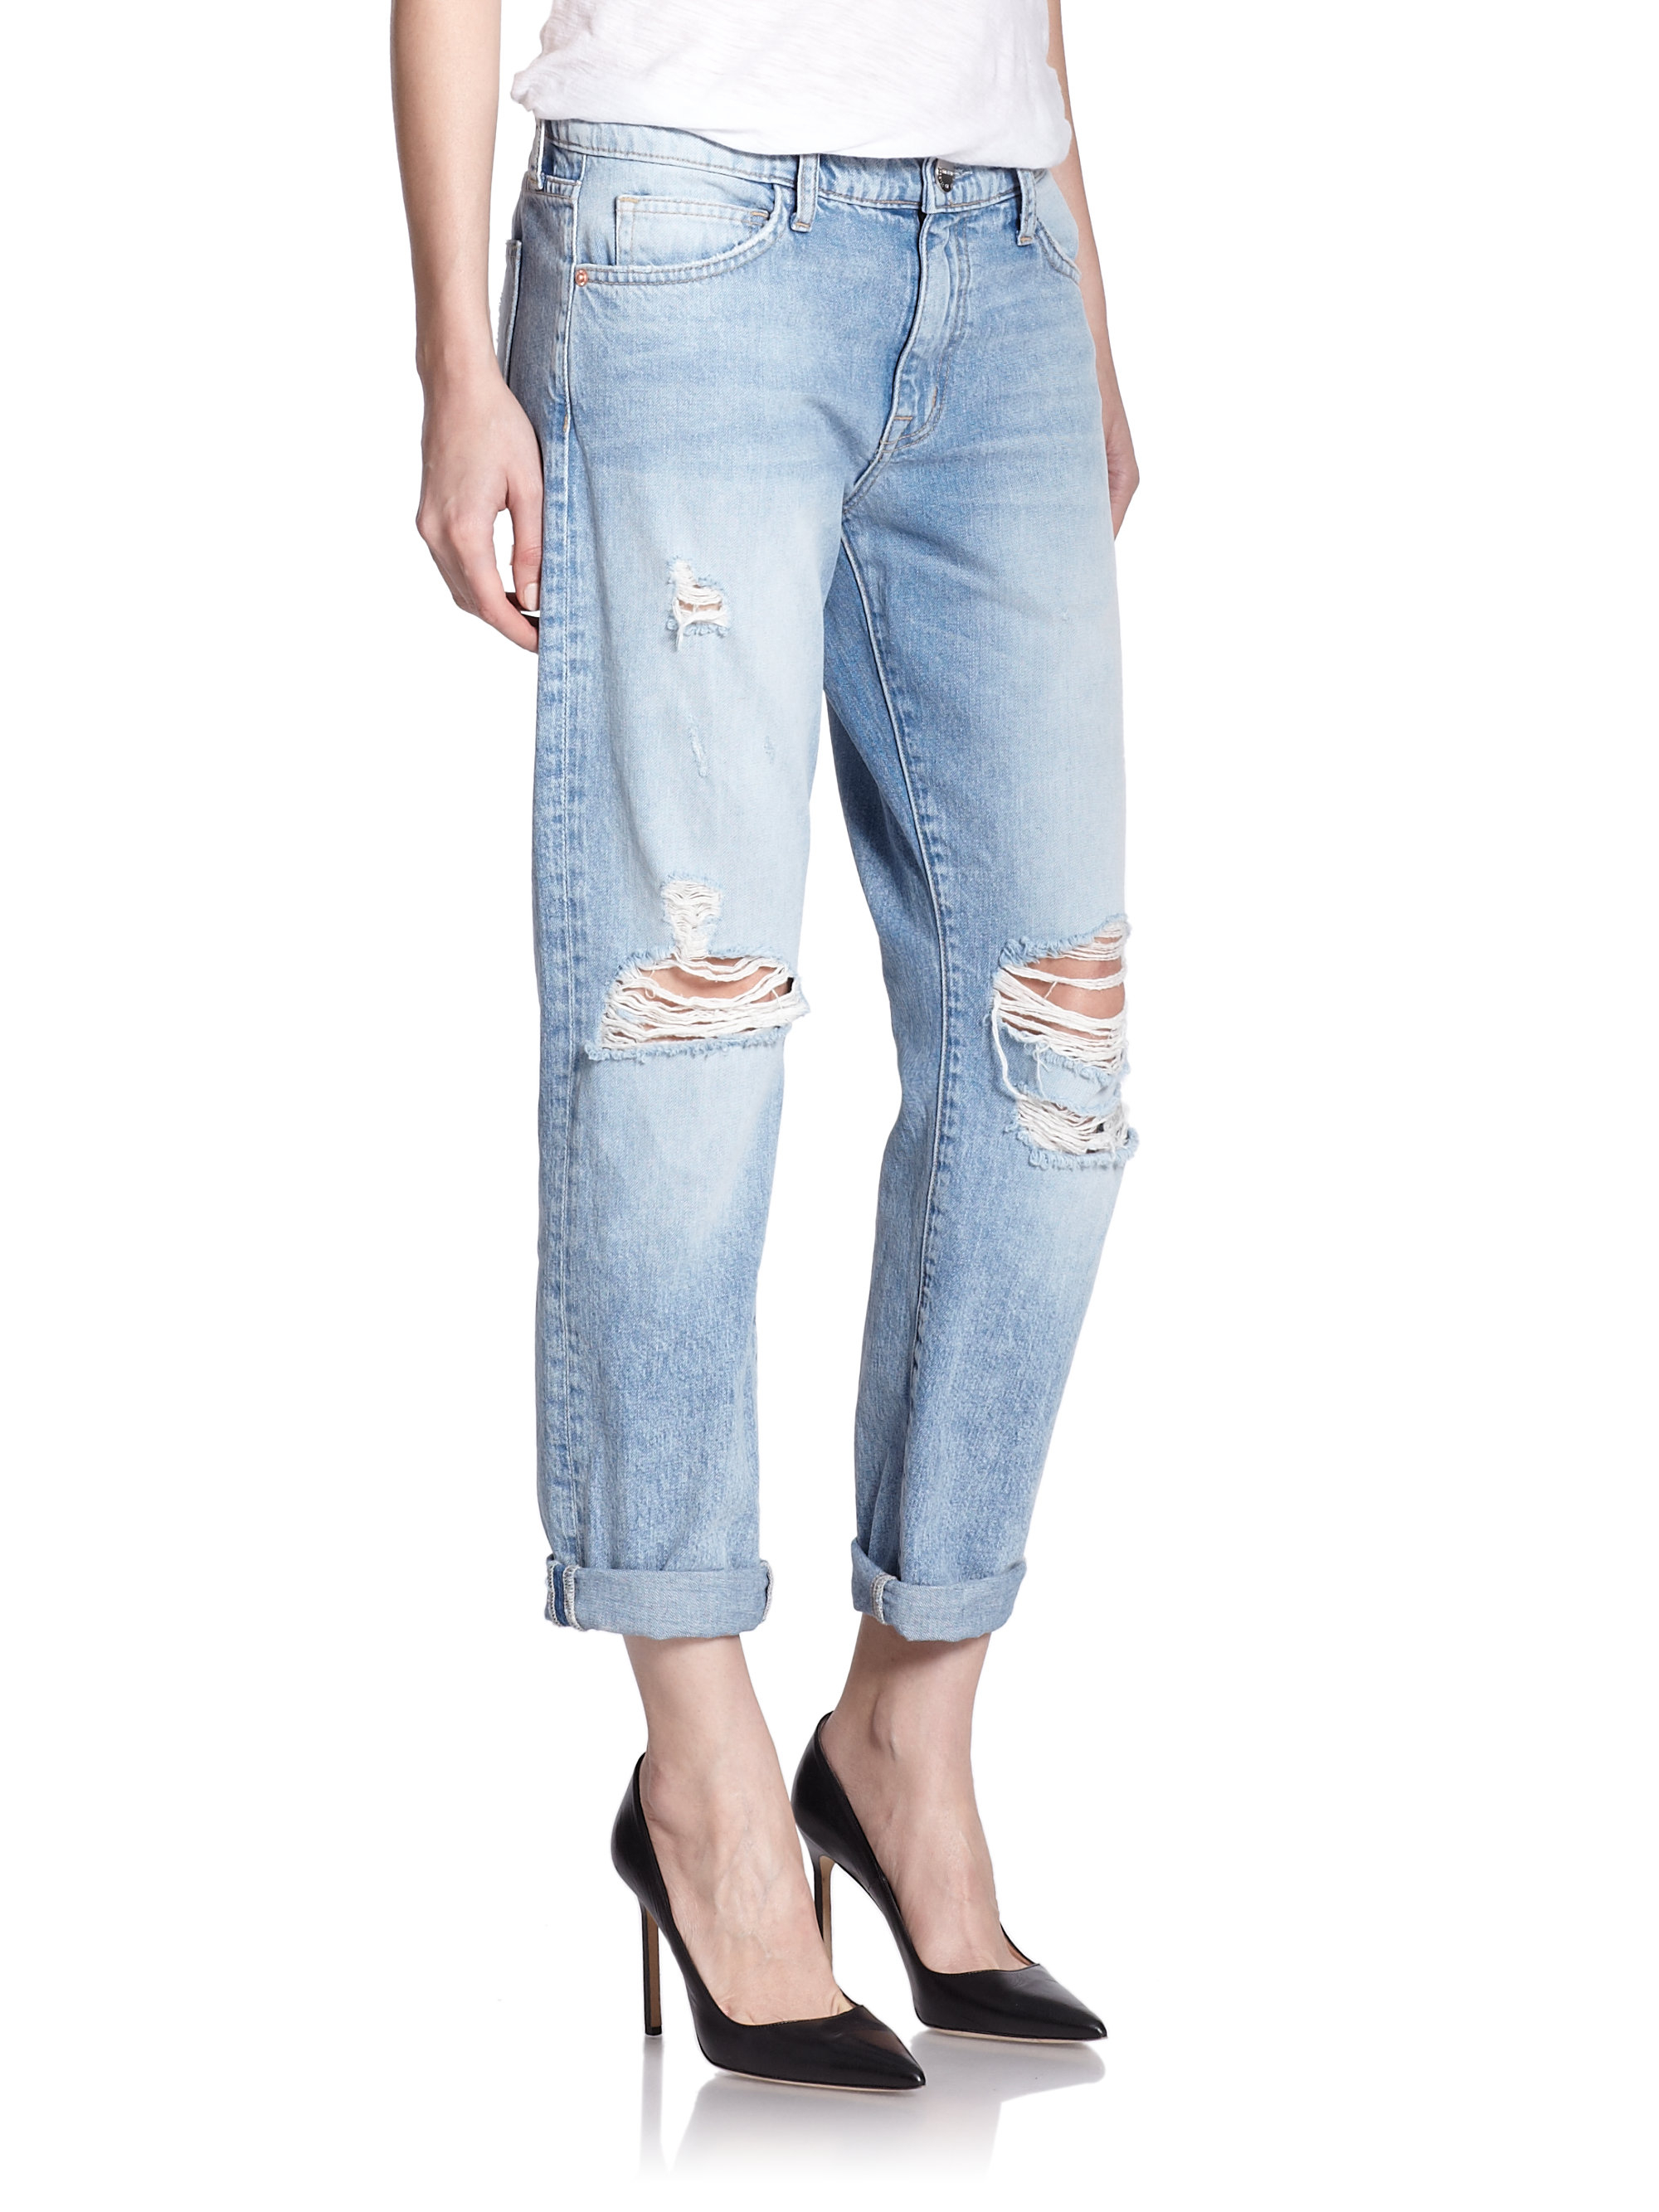 Current/elliott Woman Distressed Boyfriend Jeans Light Denim Size 25 Current Elliott Buy Cheap Pre Order Purchase Cheap Free Shipping Amazing Price How Much Online MxVPl1w